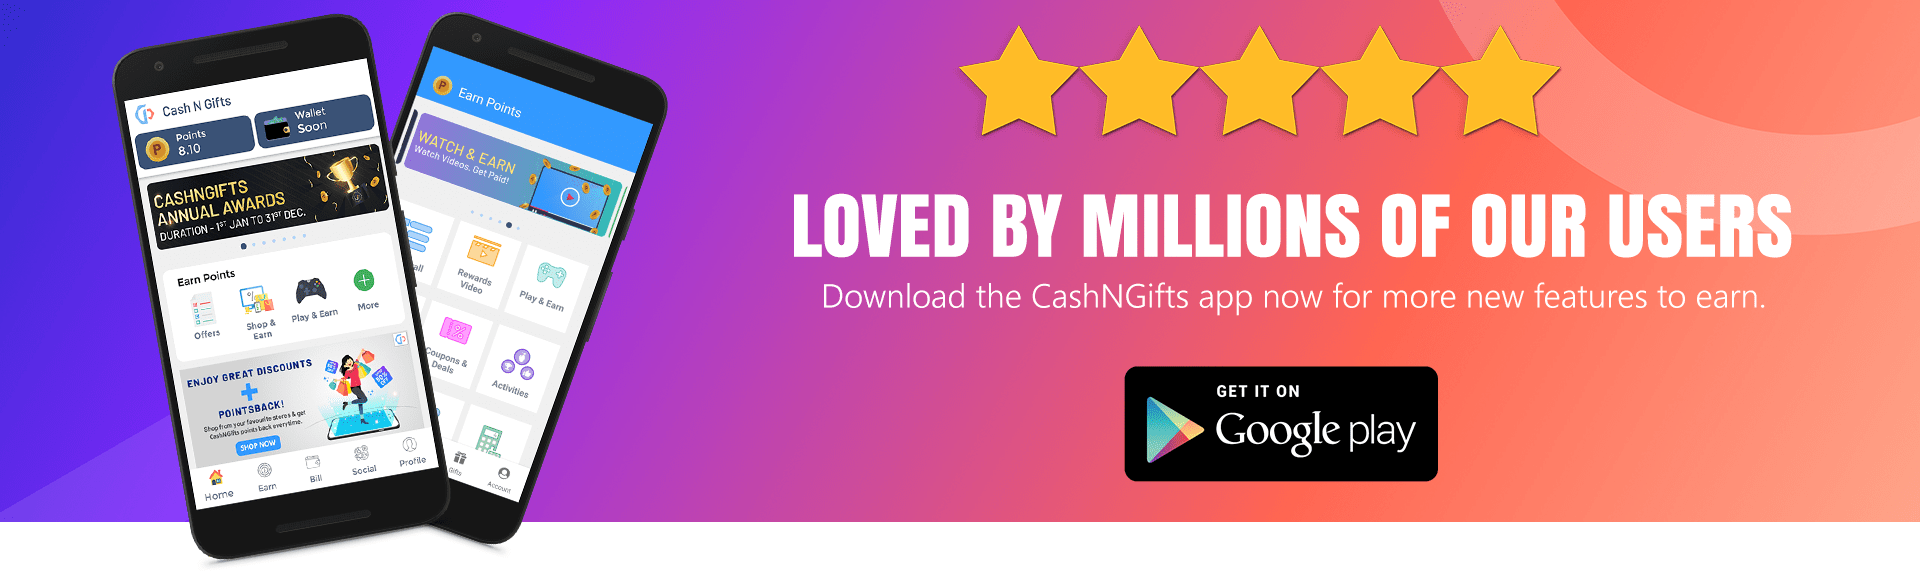 Download CashNGifts app